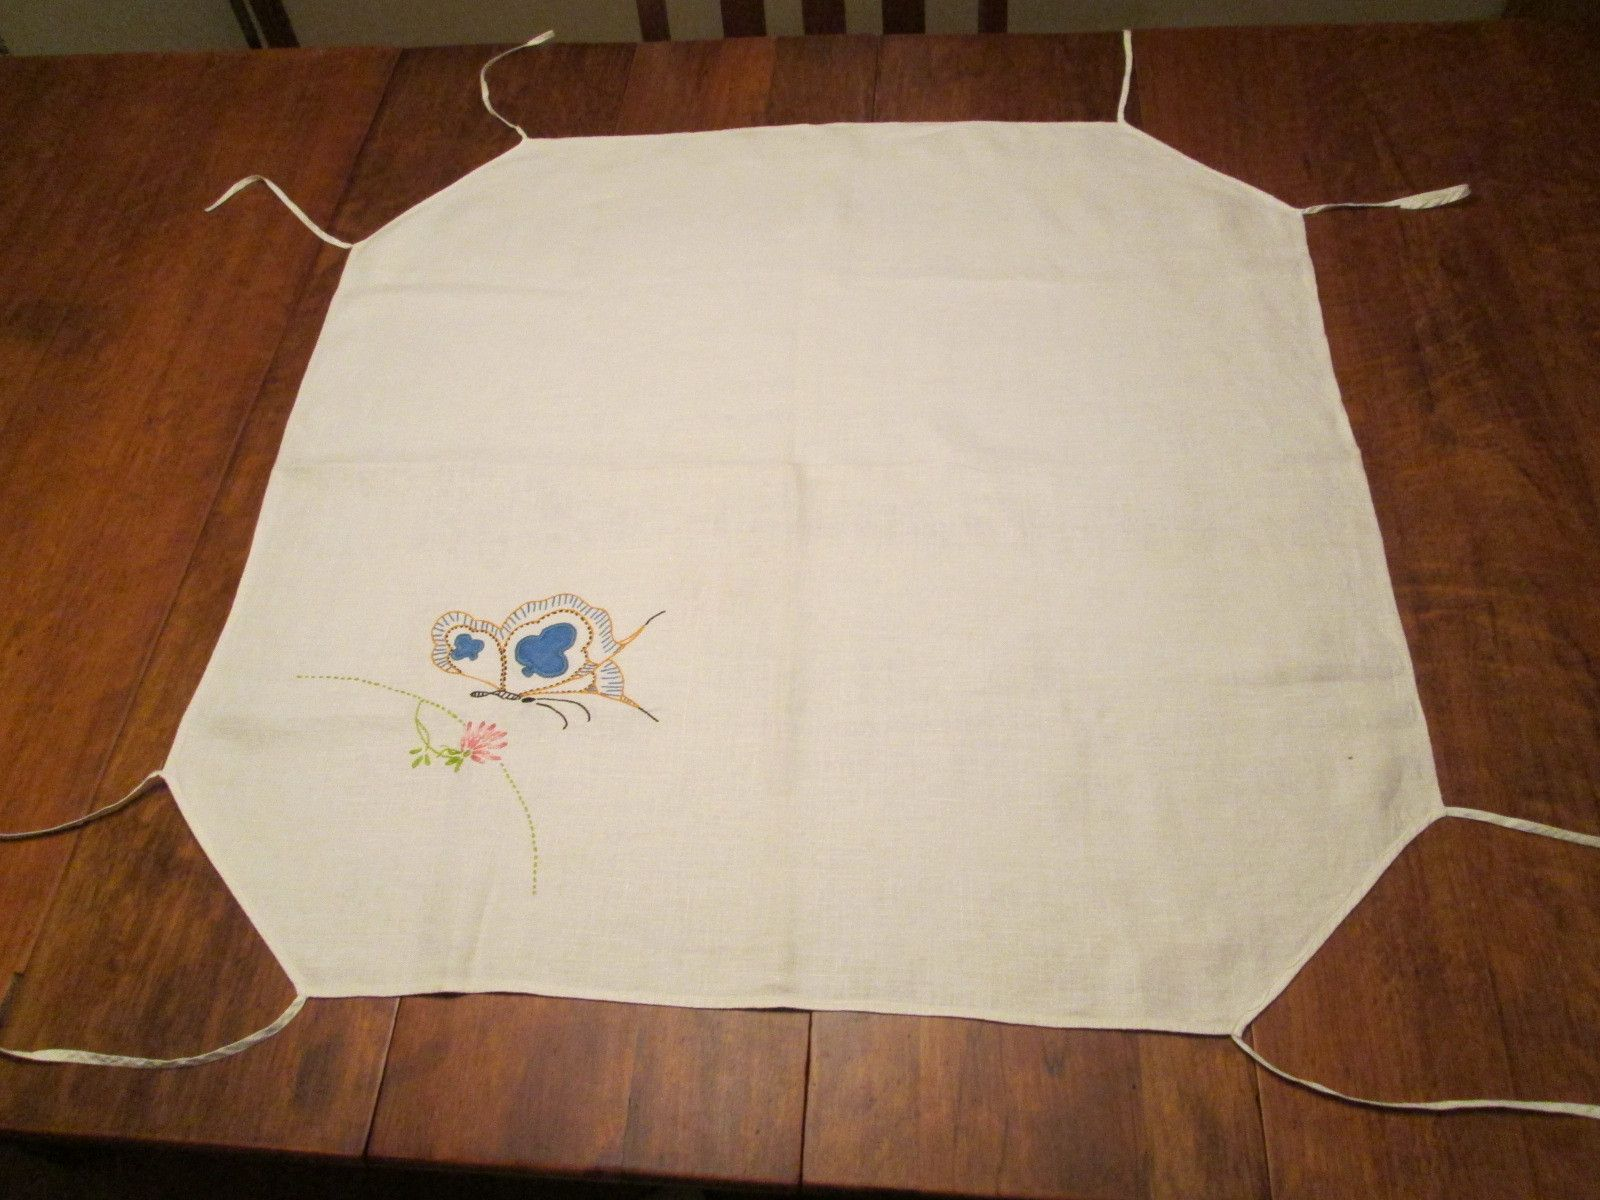 Card Tablecloth Vintage 1930s Linen Butterfly Applique Embroidery  $15  - Offers accepted, mail to: vanityflairvintage@gmail.com                 http://www.rubylane.com/item/676693-CLL149/Card-Tablecloth-Vintage-1930s-Linen-Butterfly